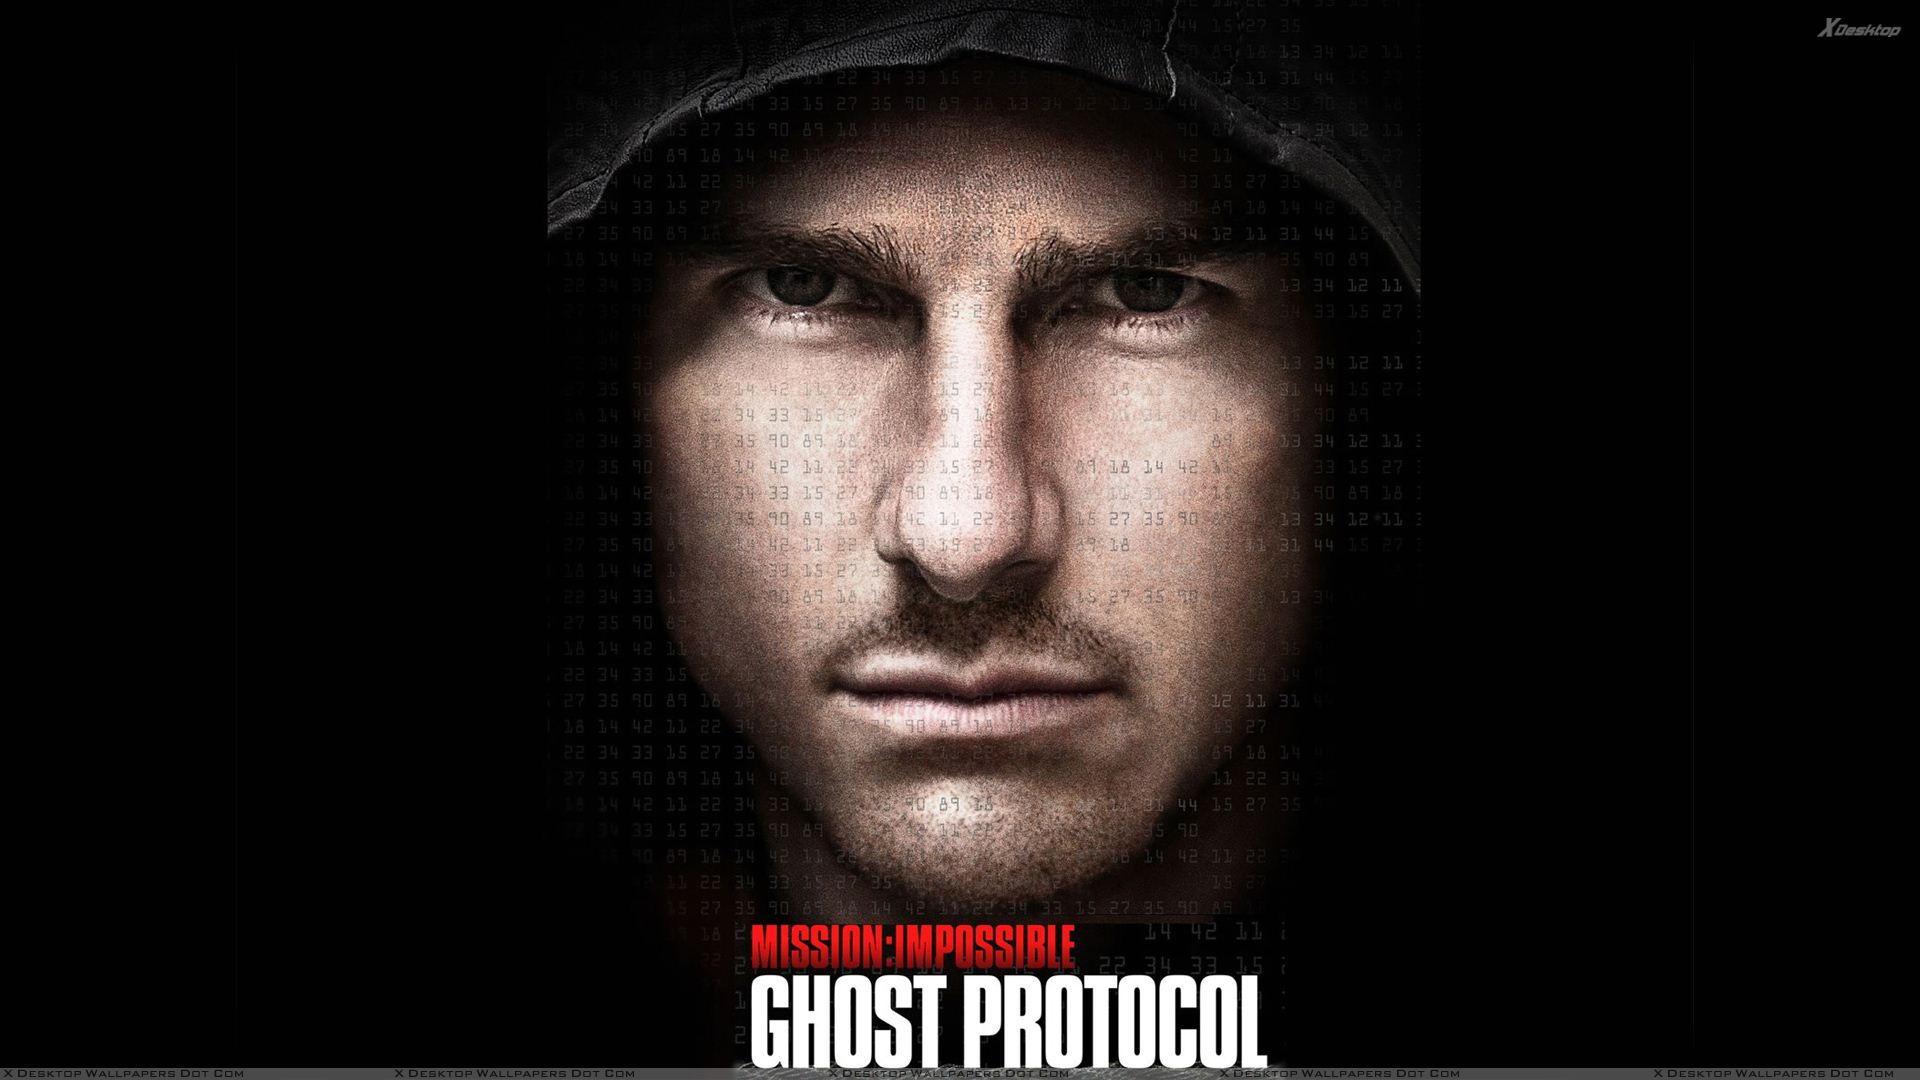 Tom Cruise Wallpapers Photos Images In Hd